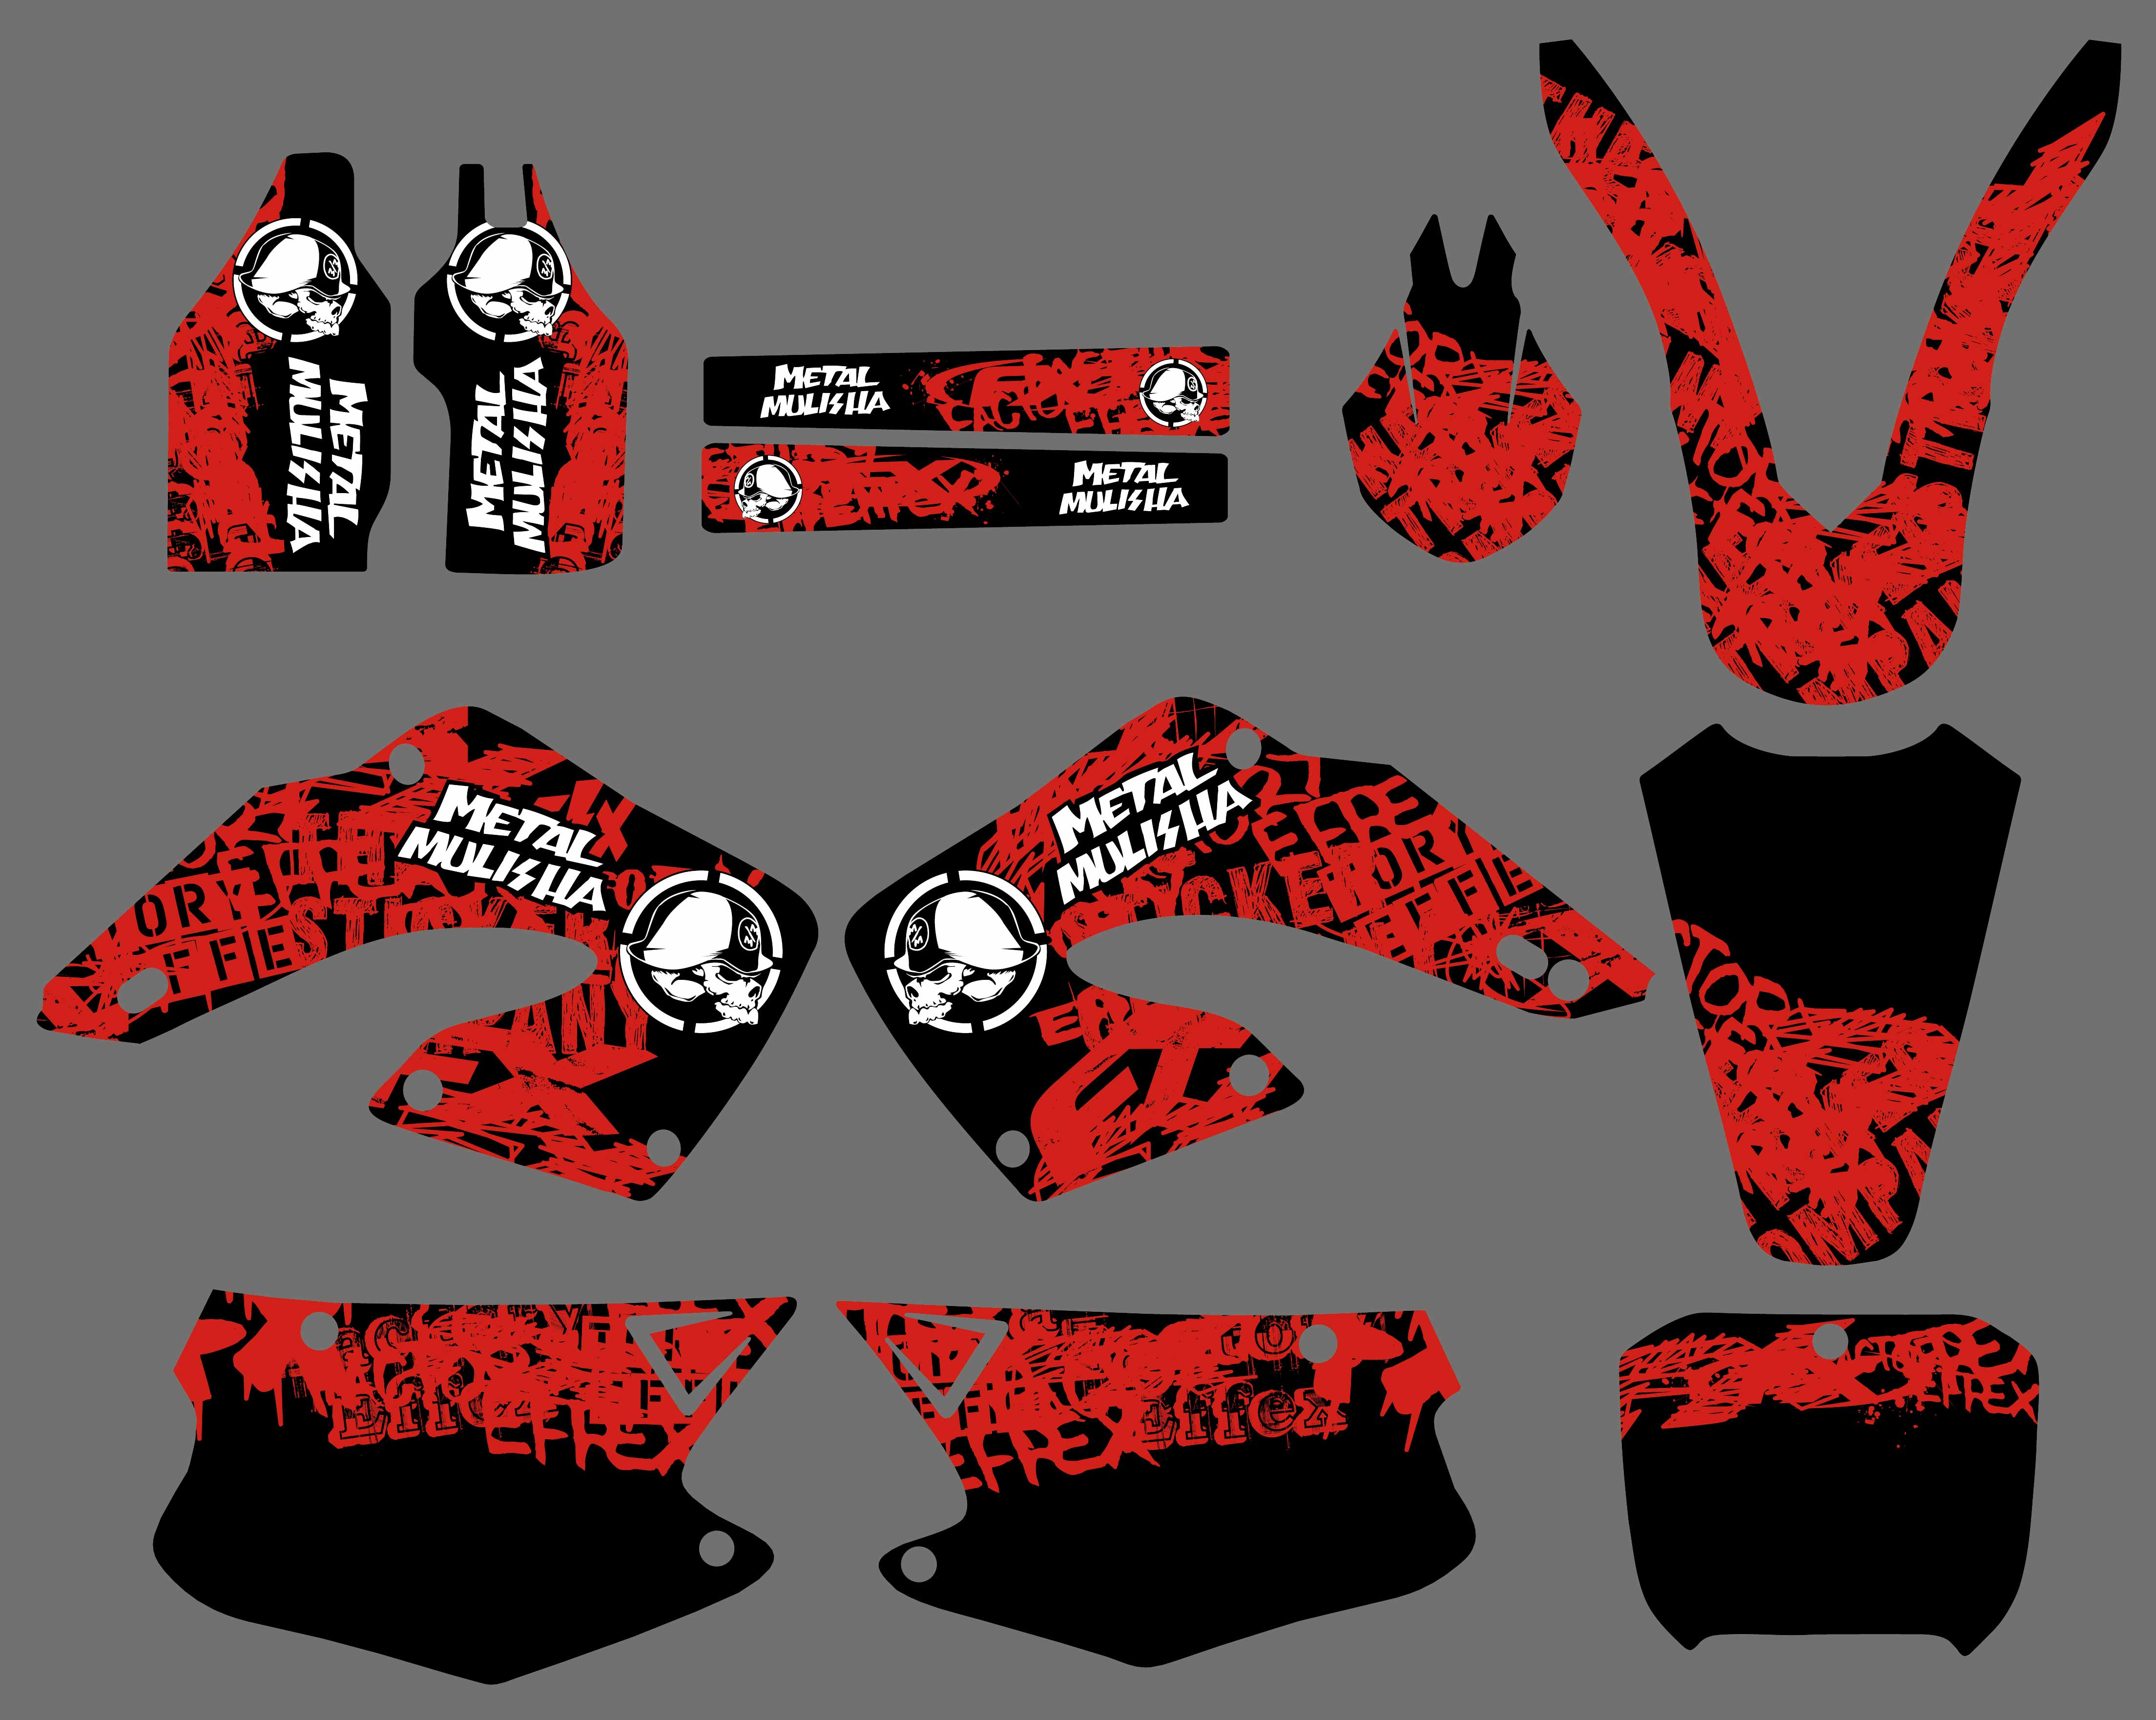 NEW STYLE TEAM DECALS STICKERS Graphics For Honda CR125R CR250R CR125 CR250 CR 125 250 125R 250R 2000 2001 цена